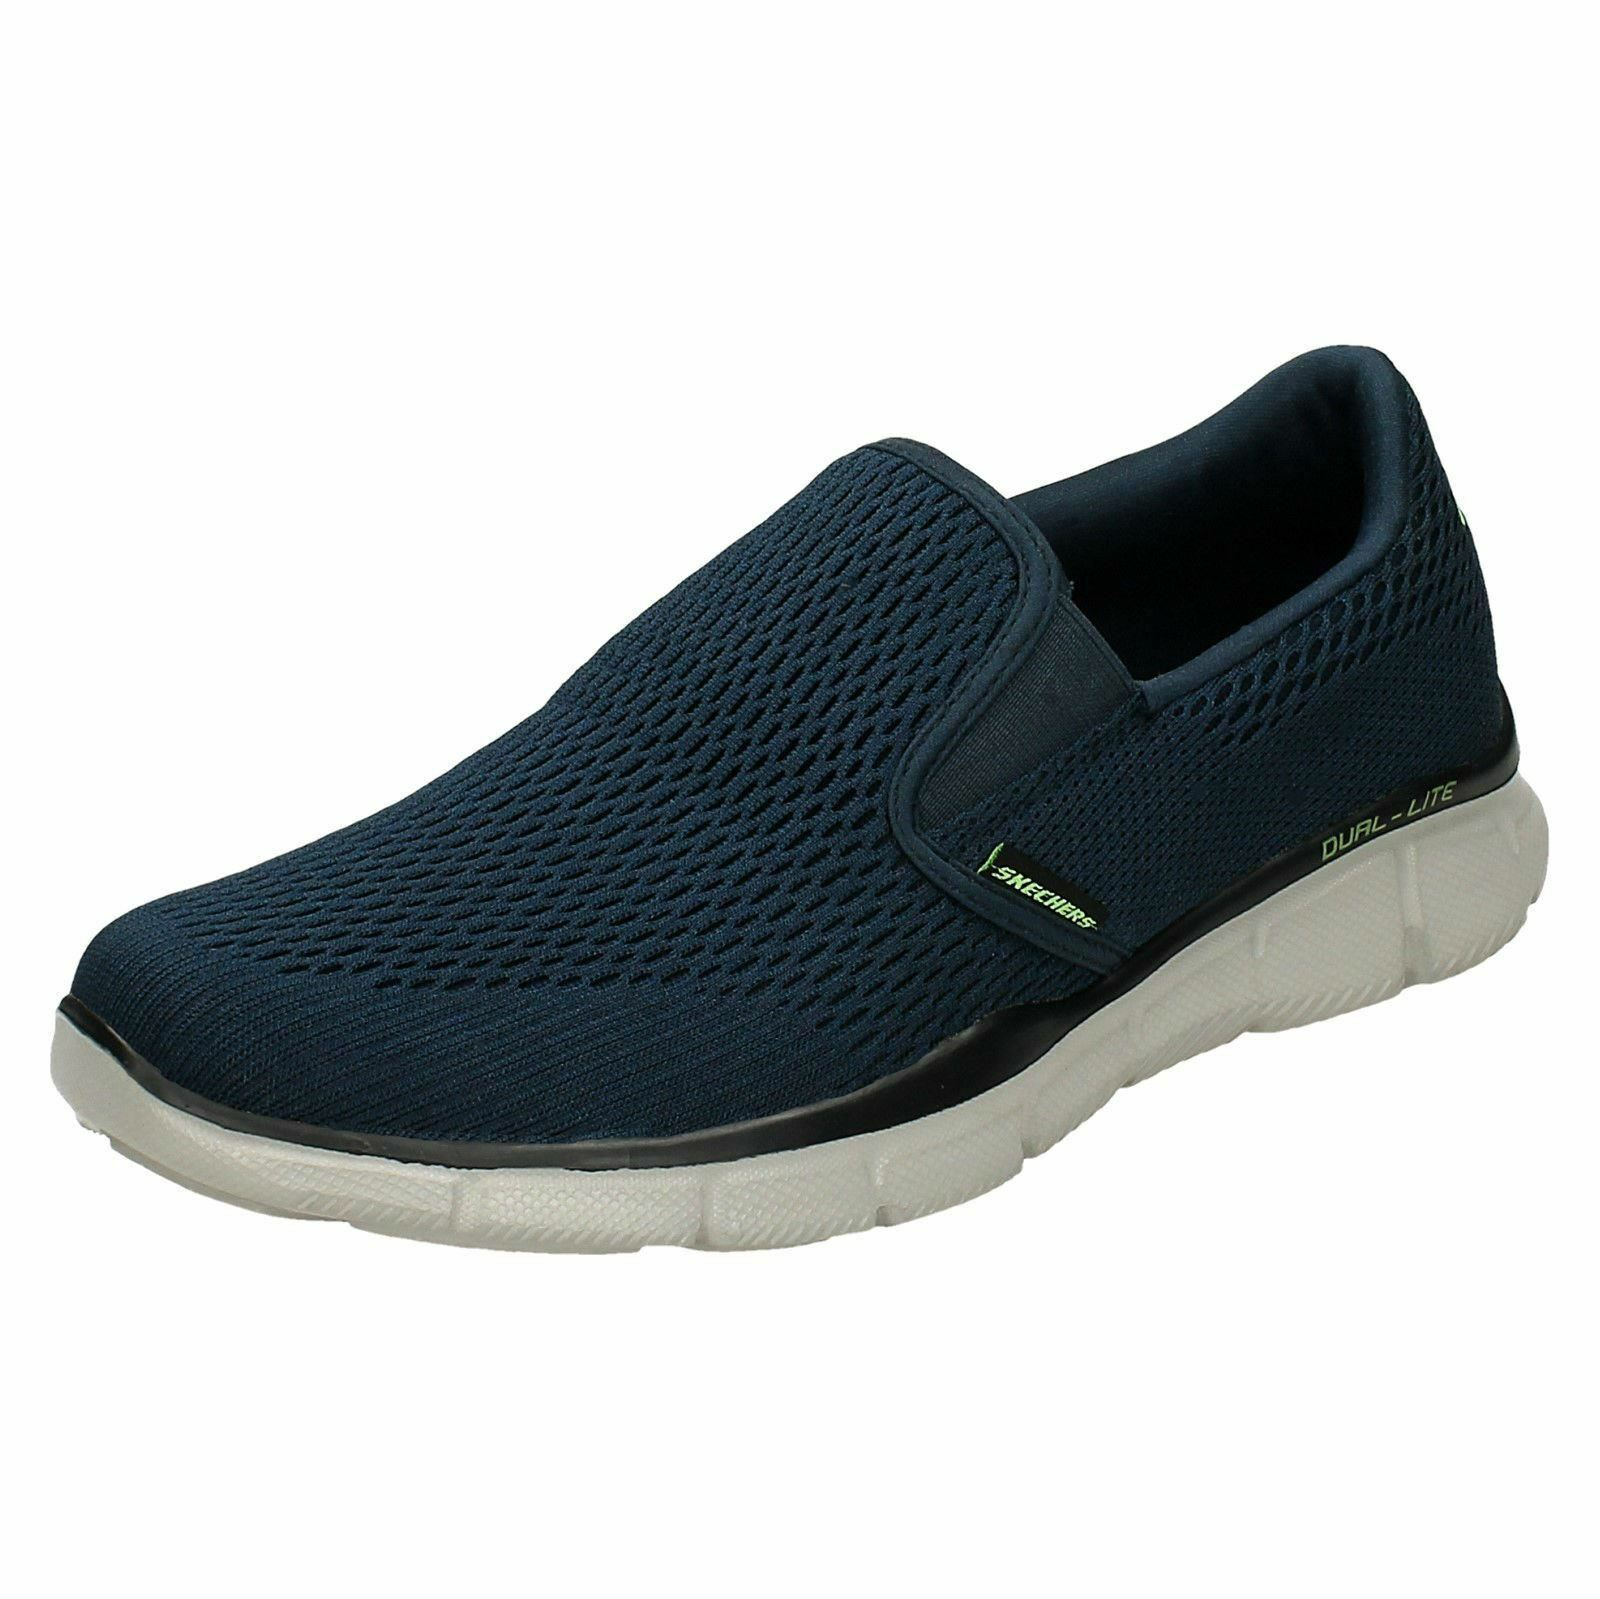 Skechers Navy Equilizer-Double Play  Uomo Navy Skechers Memory Foam Schuhes 6a1283